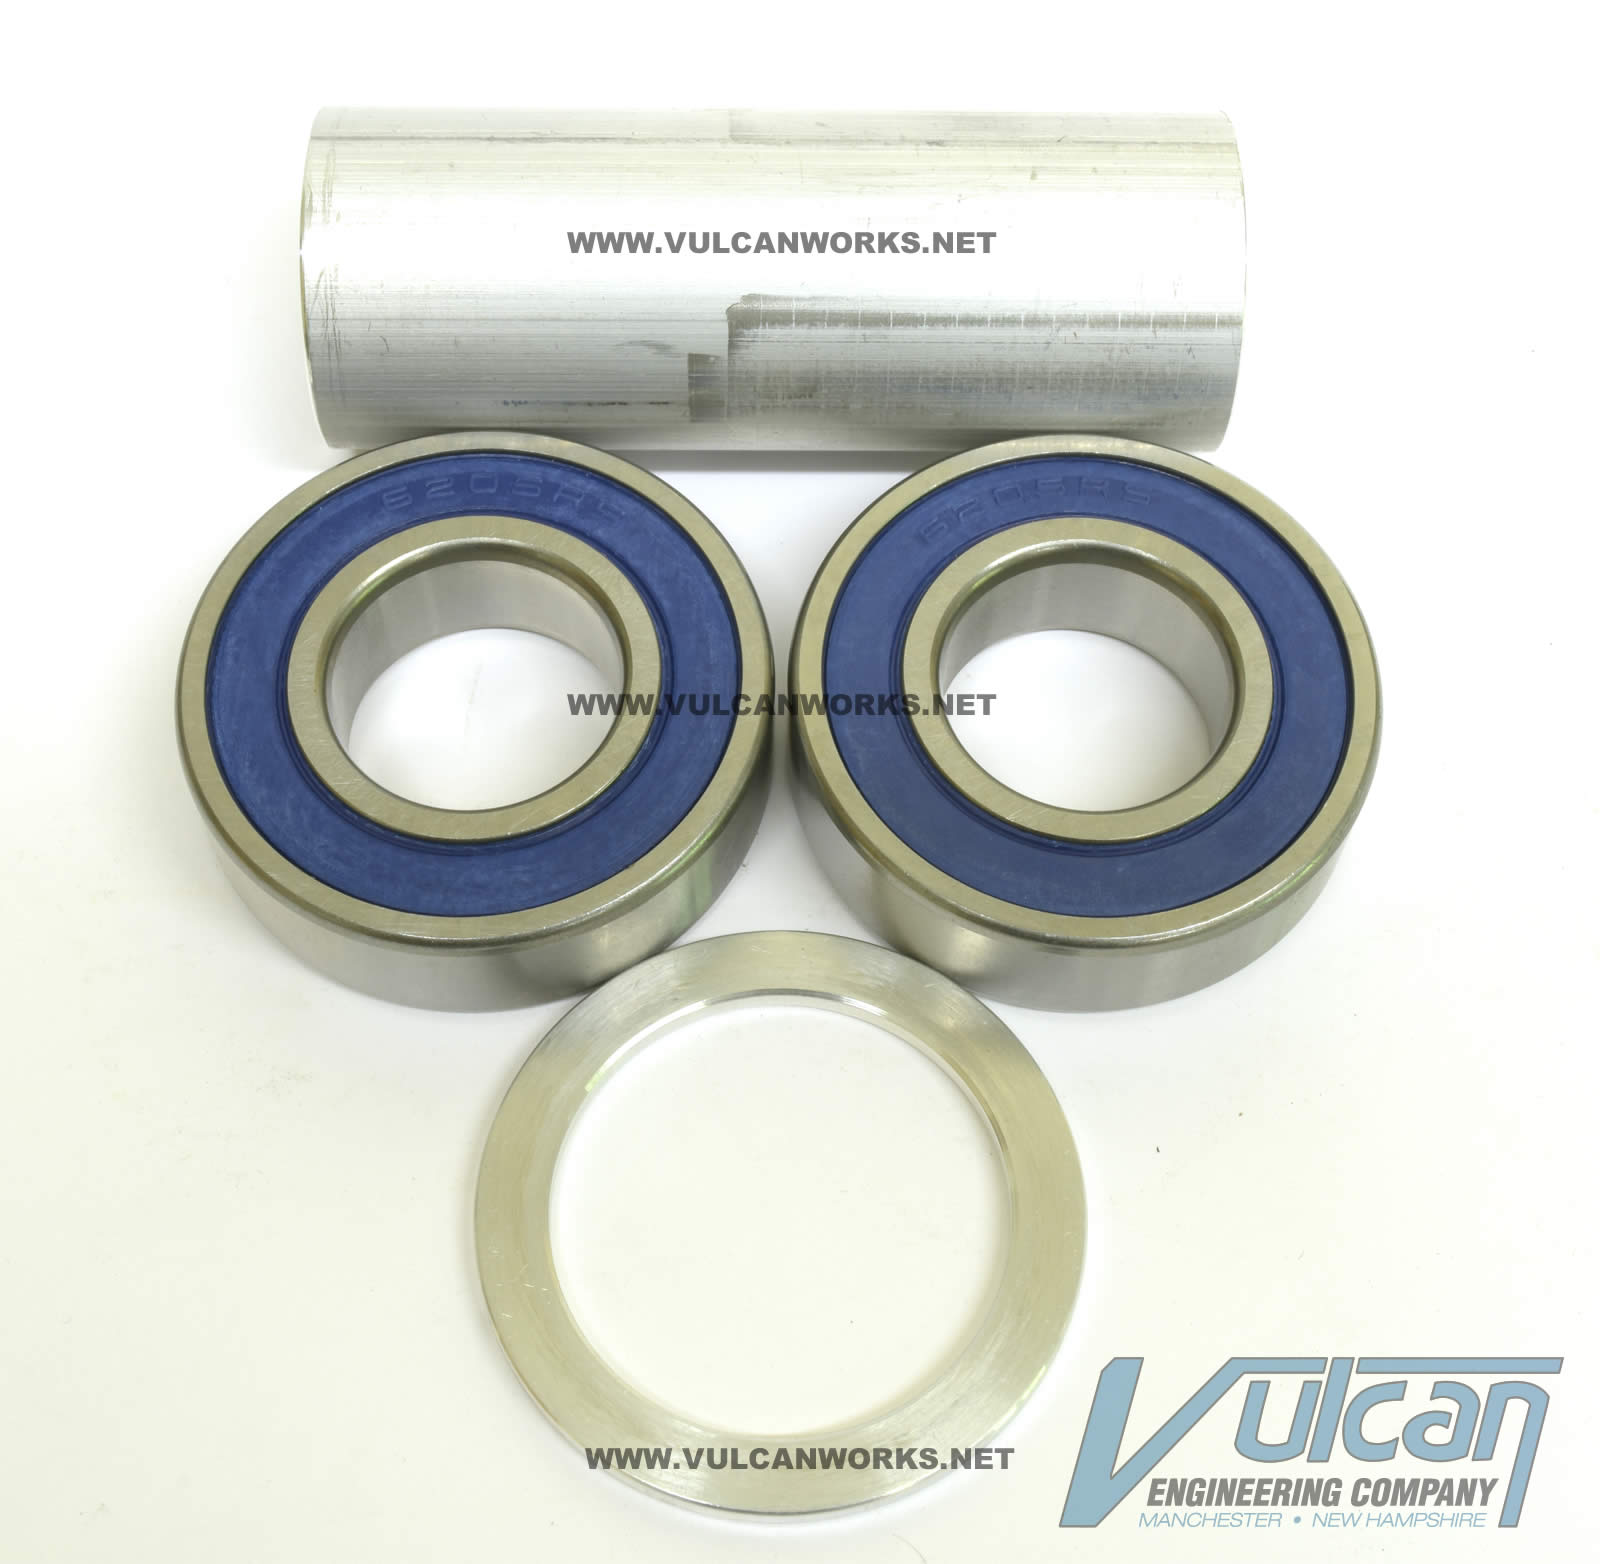 25mm Bearing Conv. for 06-07 Dyna Wheels to 2008-up Dyna Front Ends